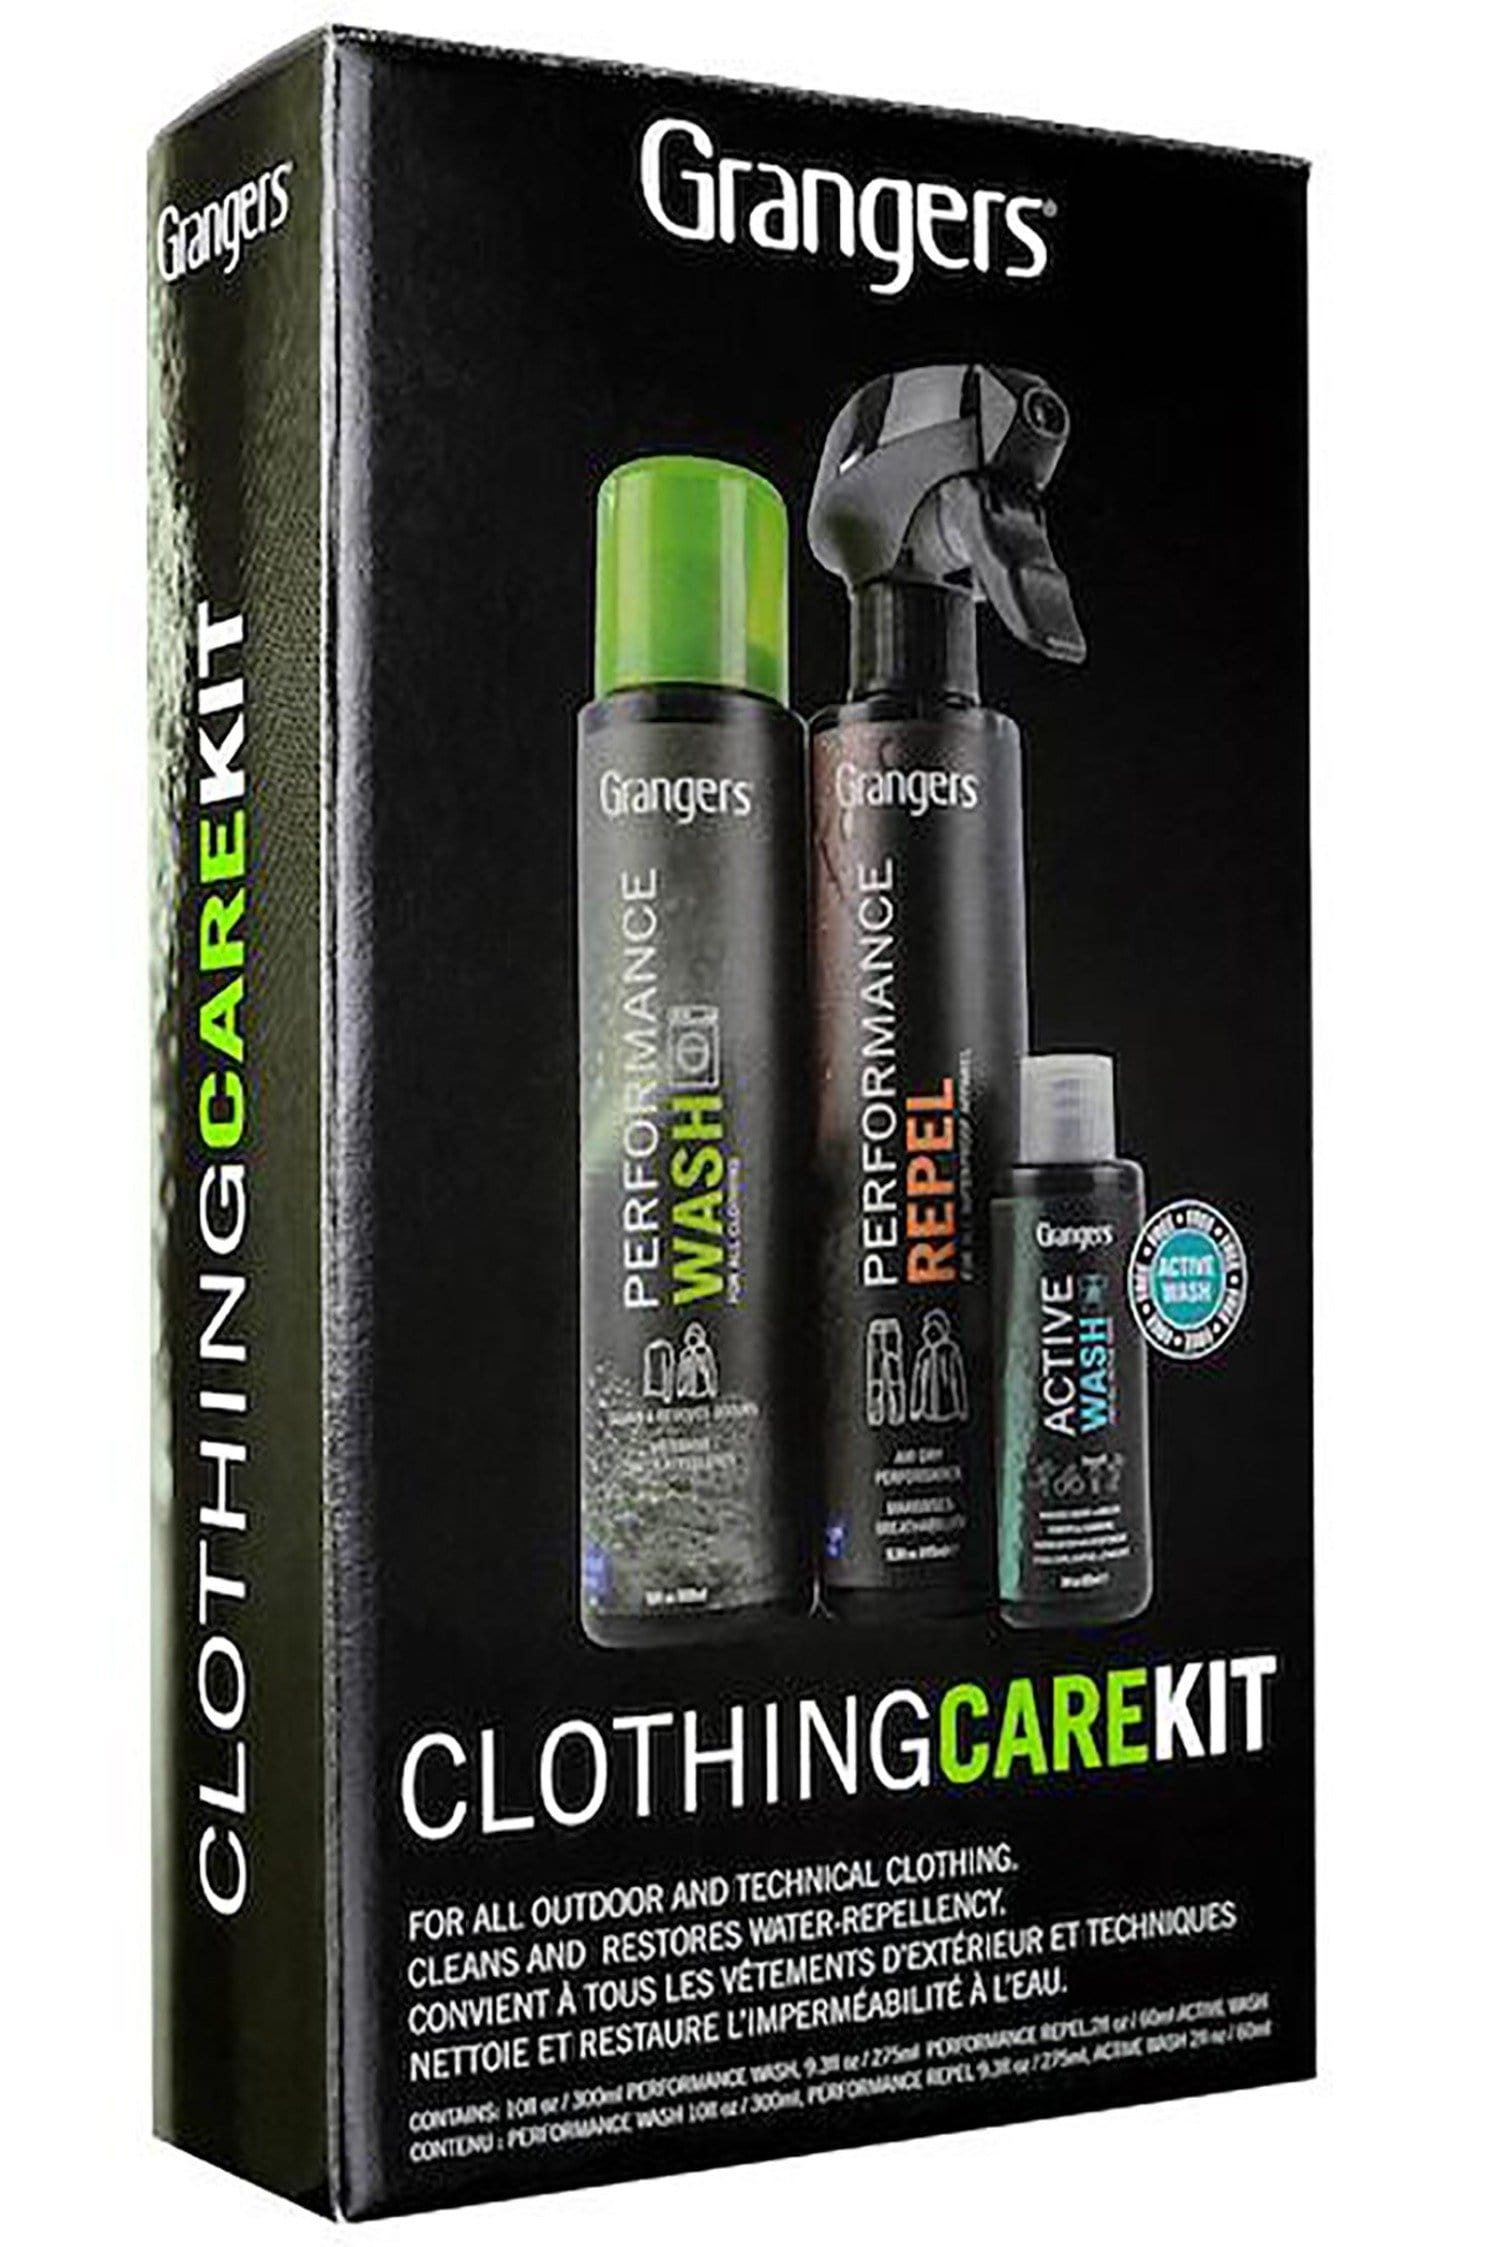 Grangers Clothing Care Kit - ACAI Activewear